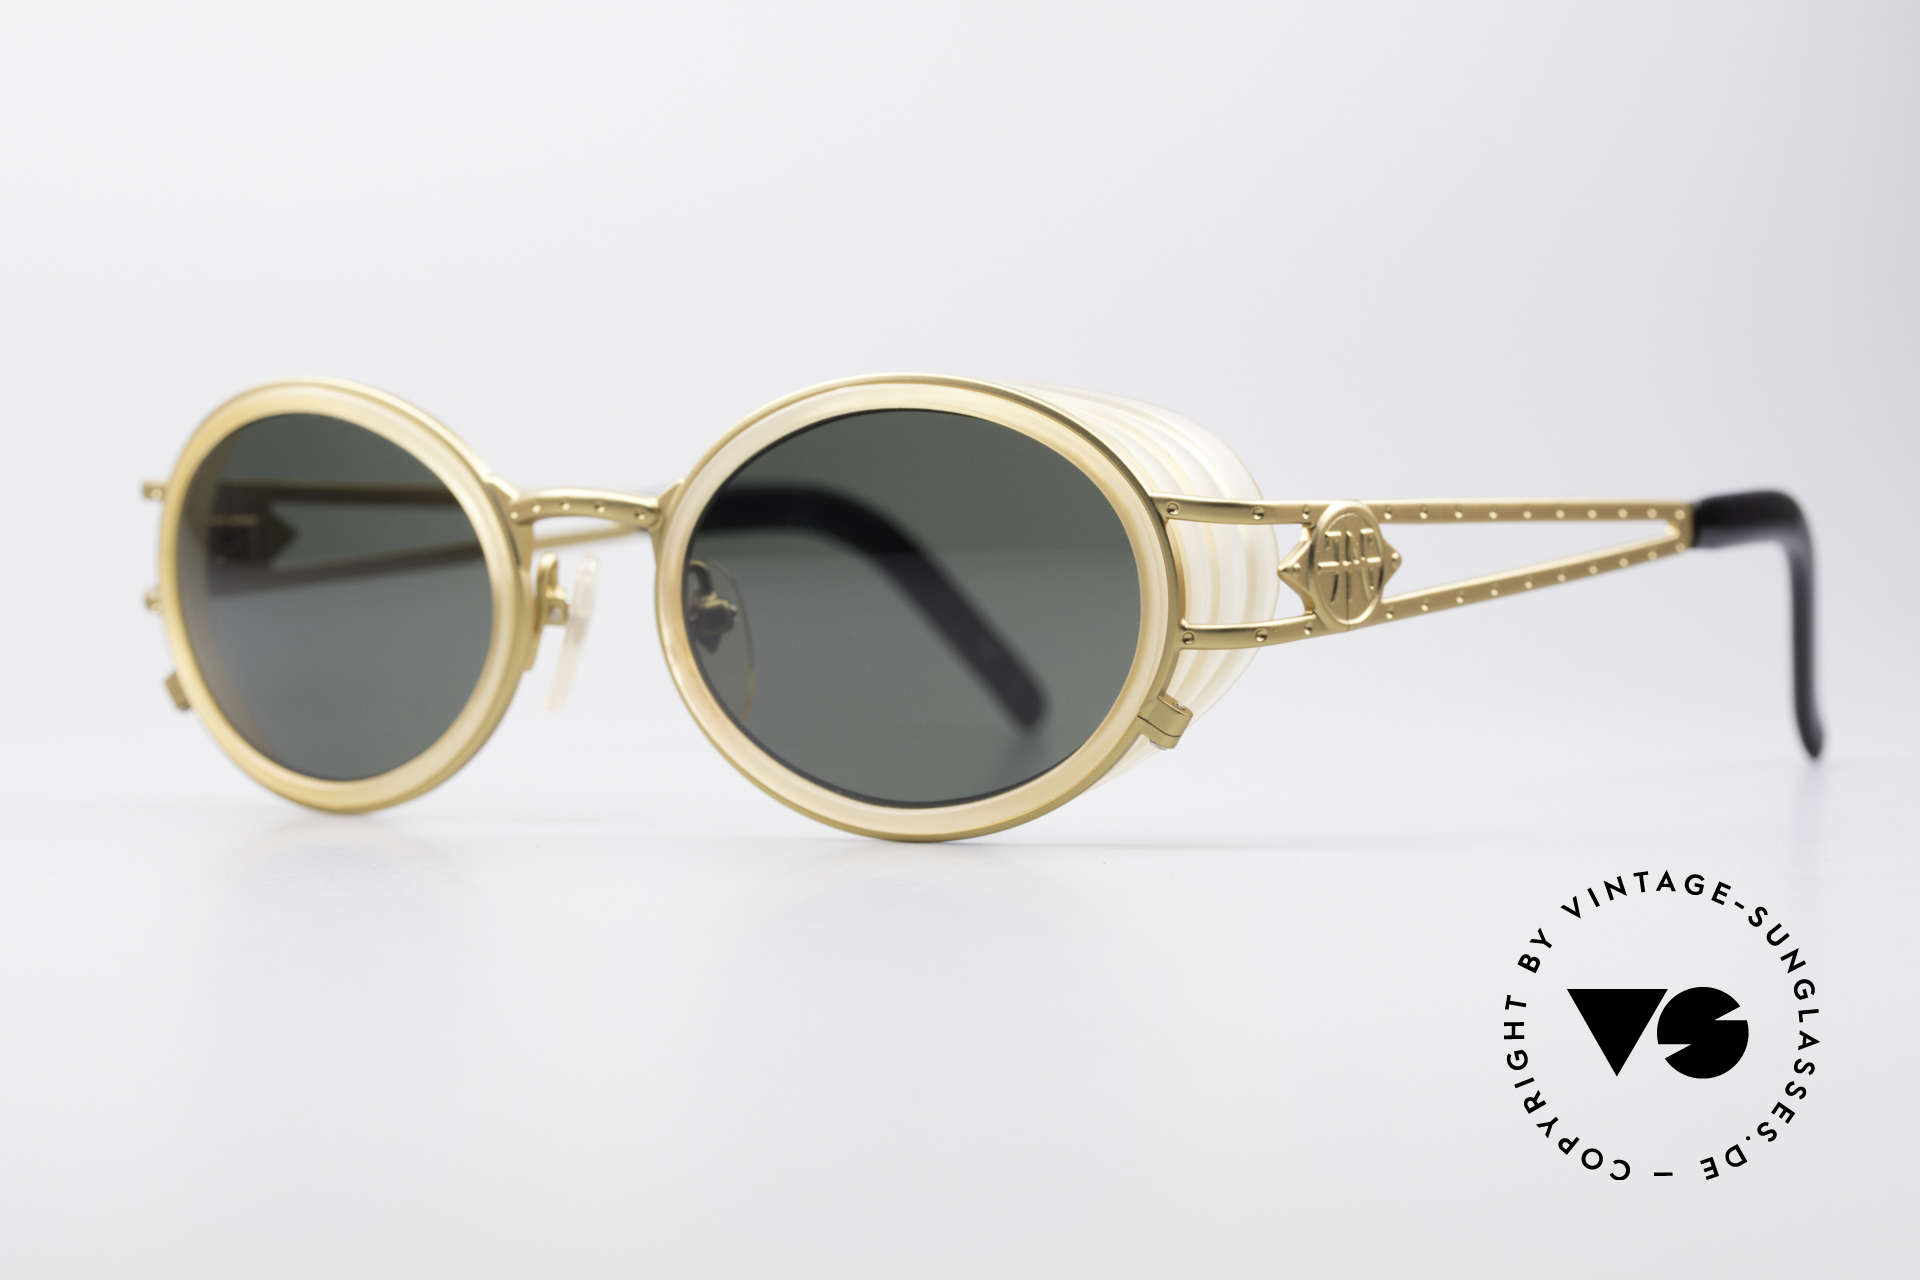 Jean Paul Gaultier 58-6202 Side Shields Sunglasses, very creative frame: high-end quality (made in Japan), Made for Men and Women